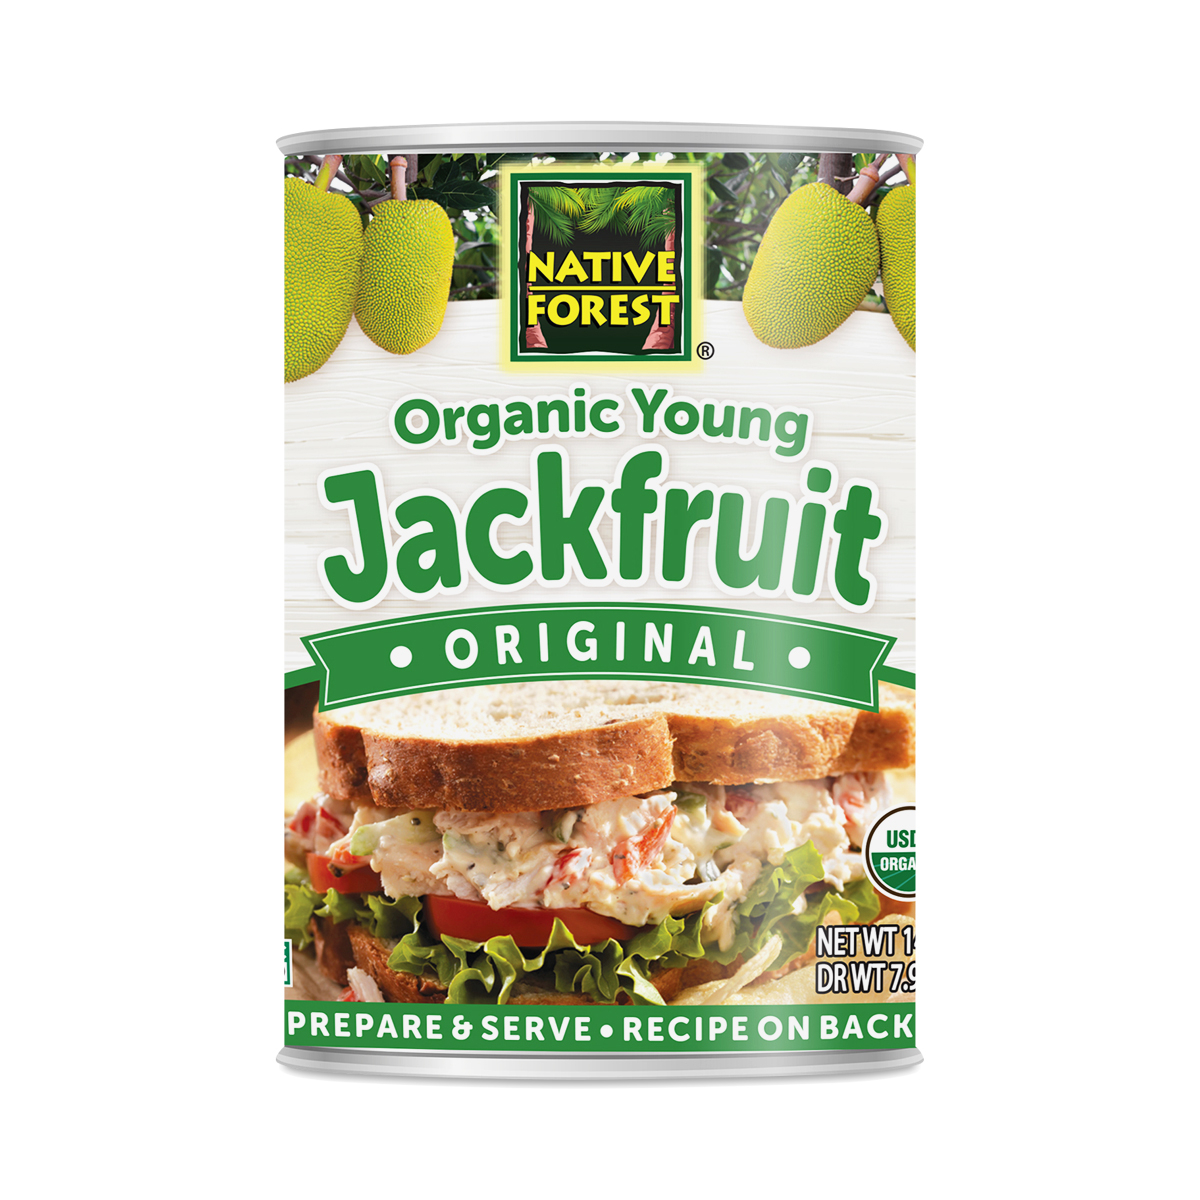 Native Forest Organic Young Jackfruit 14 oz can